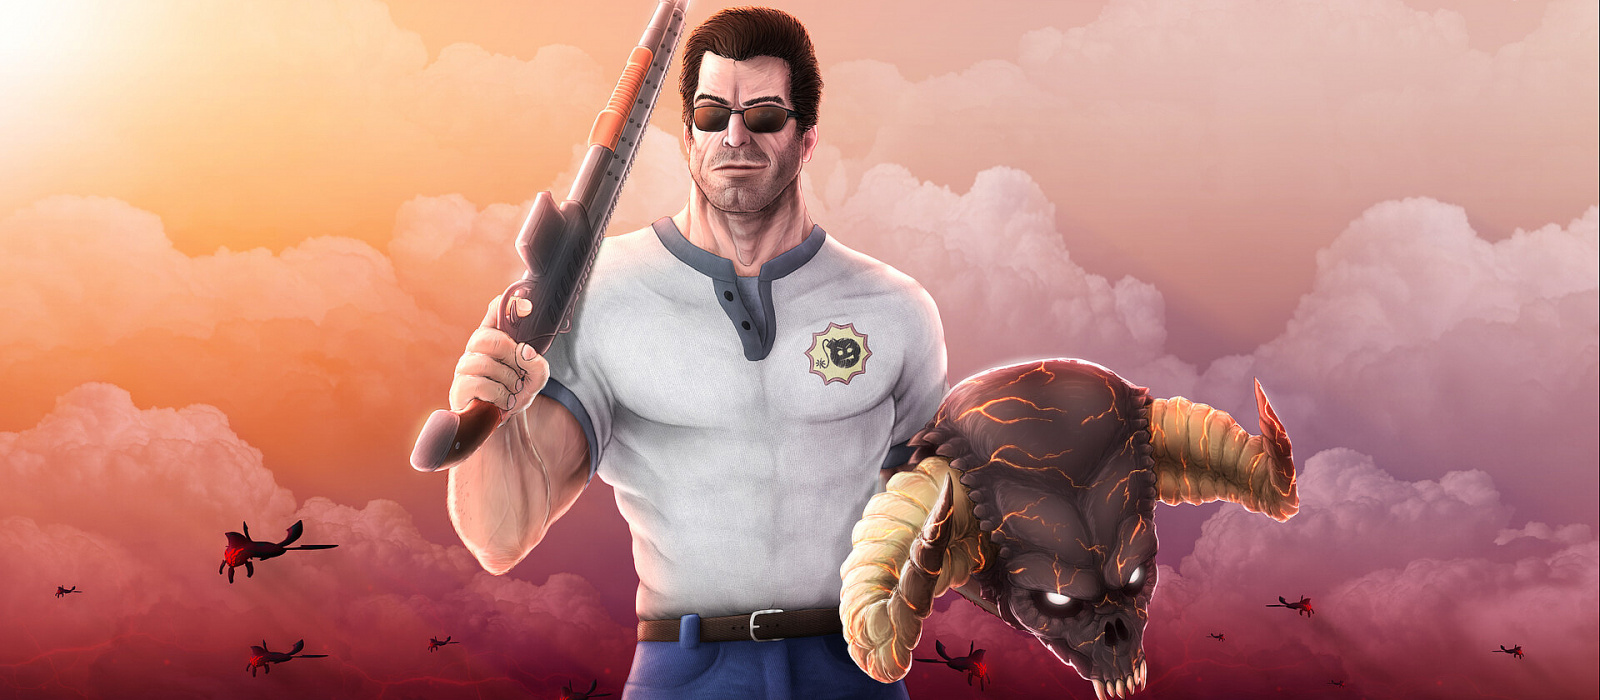 How to Disable Auto Guidance in Serious Sam: First Encounter